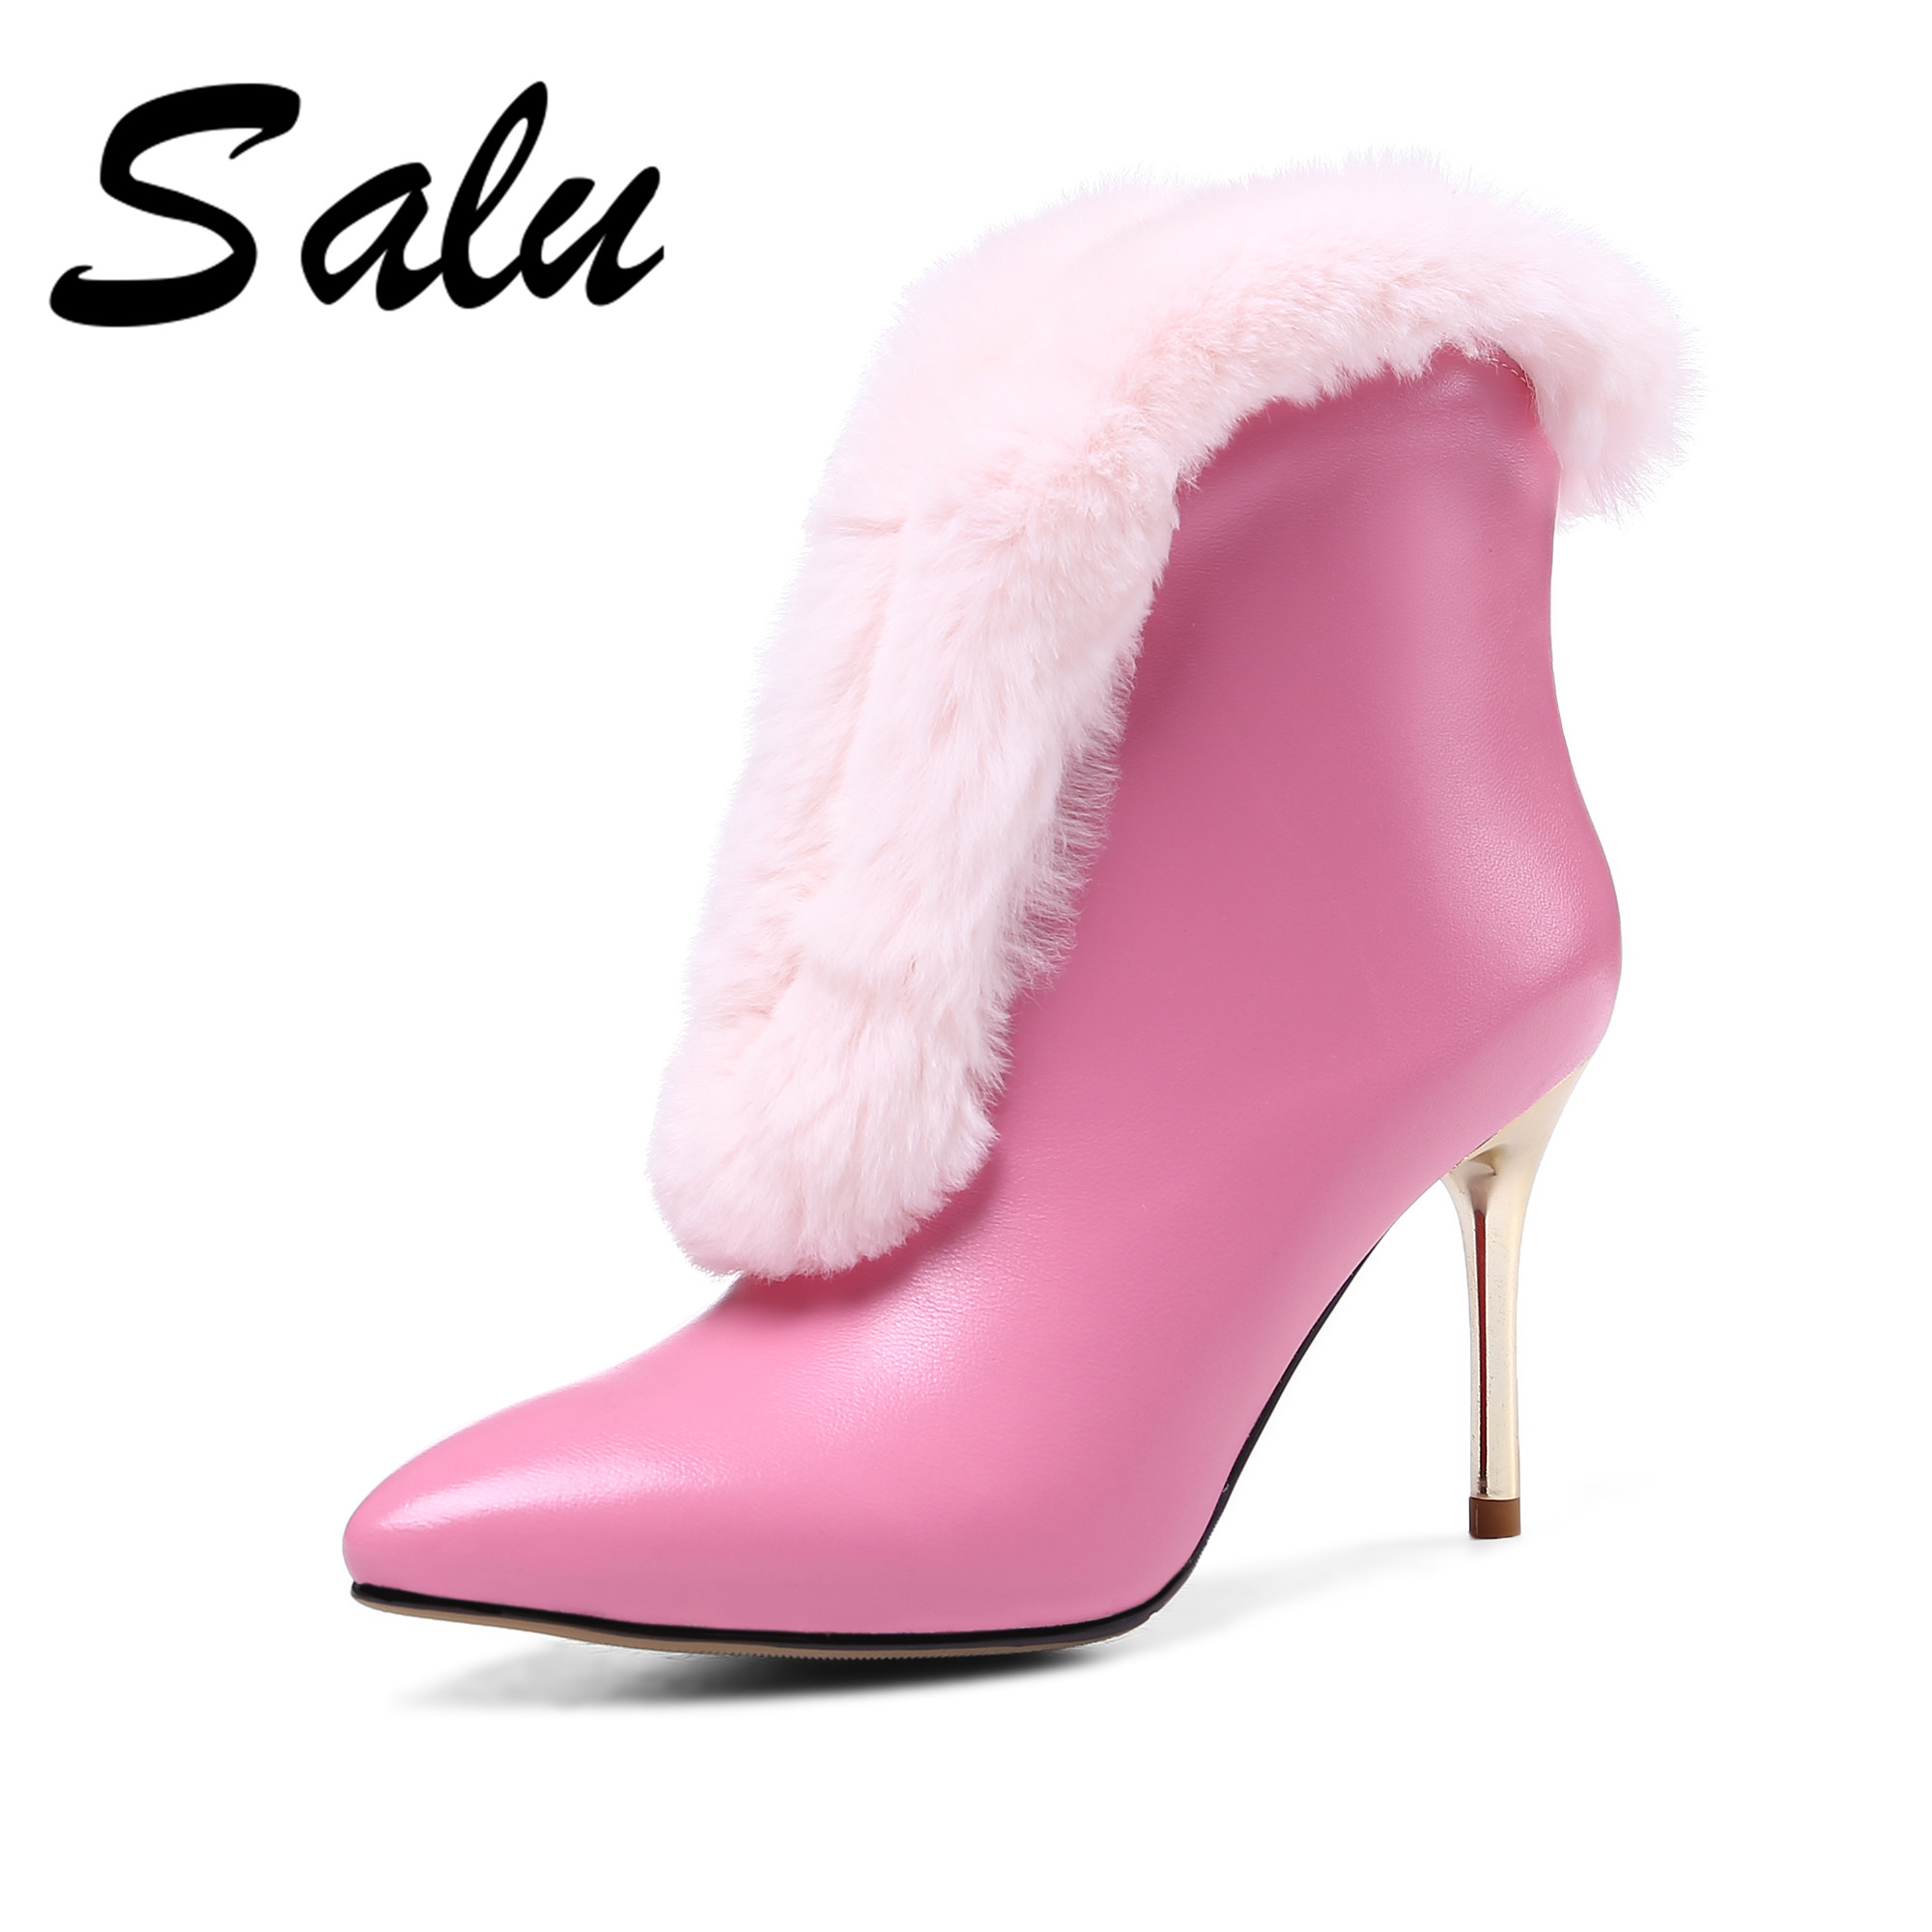 Salu Elegant Women Genuine leather Ankle Boots High Heels Suede Leather Brand Office Pumps New Warm Autumn Winter Shoes Women